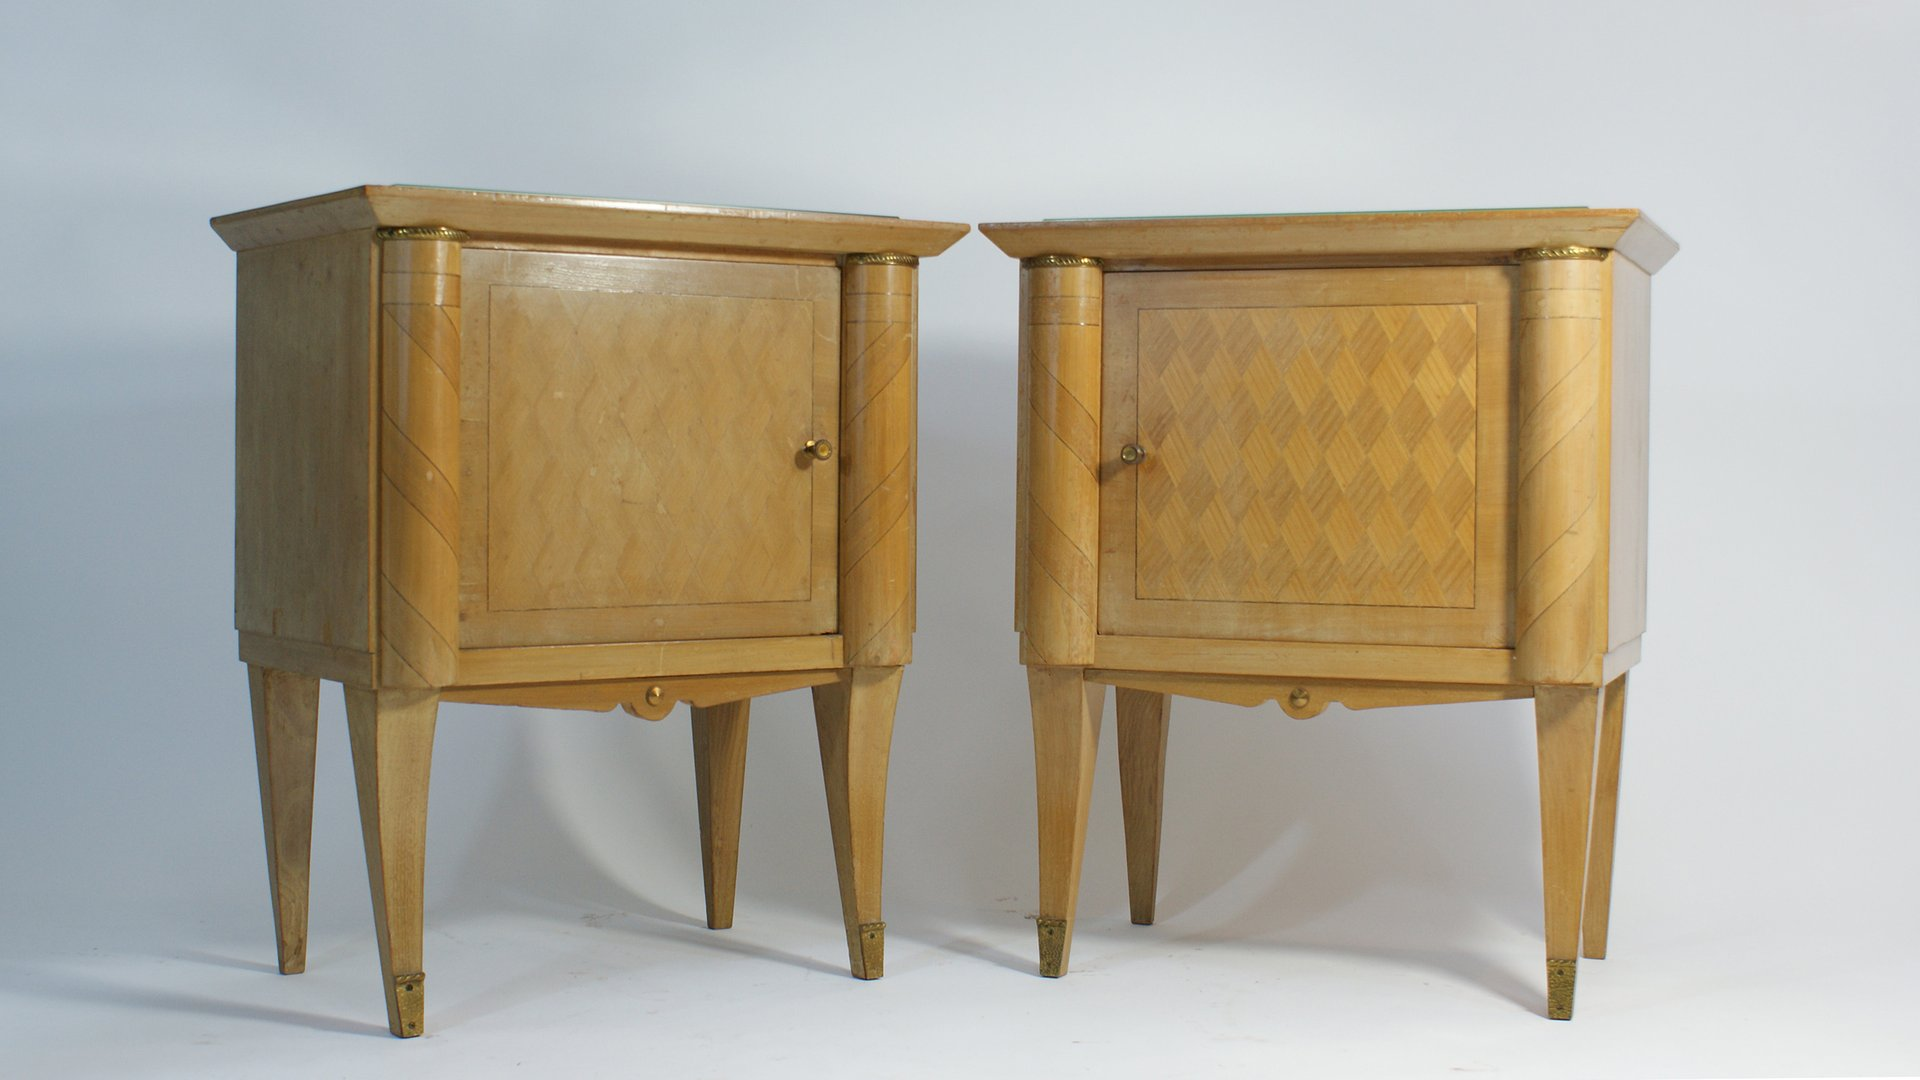 french art deco nightstands 1940s set of 2 for sale at pamono. Black Bedroom Furniture Sets. Home Design Ideas